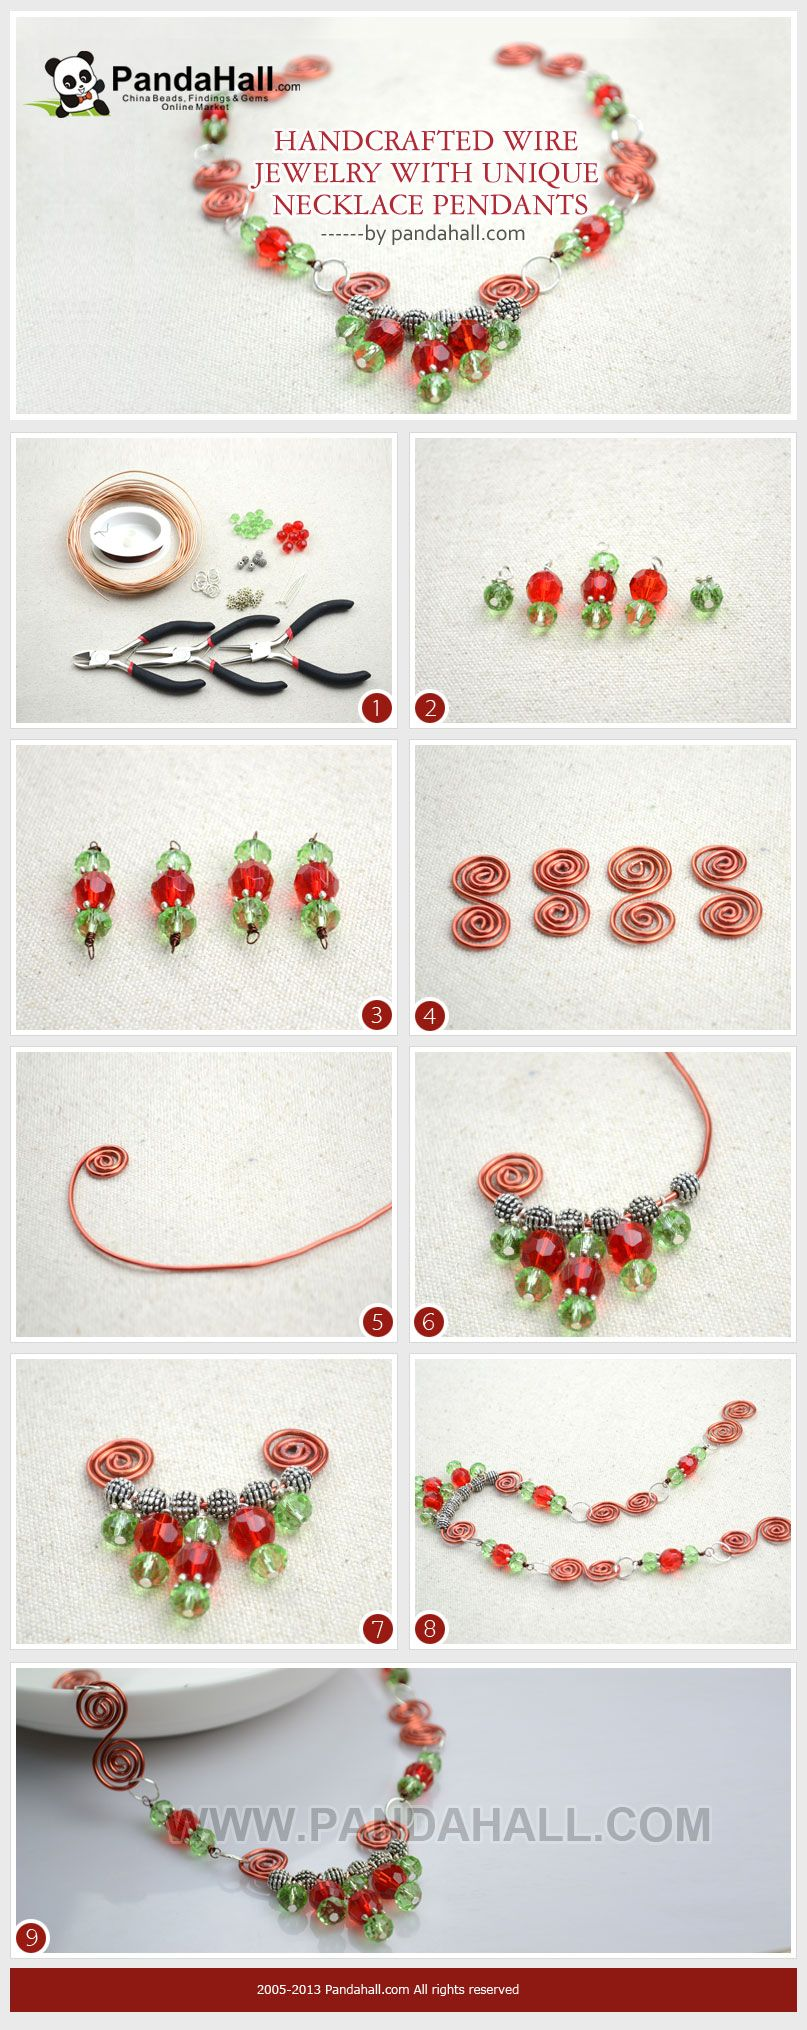 Handcrafted wire jewelry with unique necklace pendants from ...